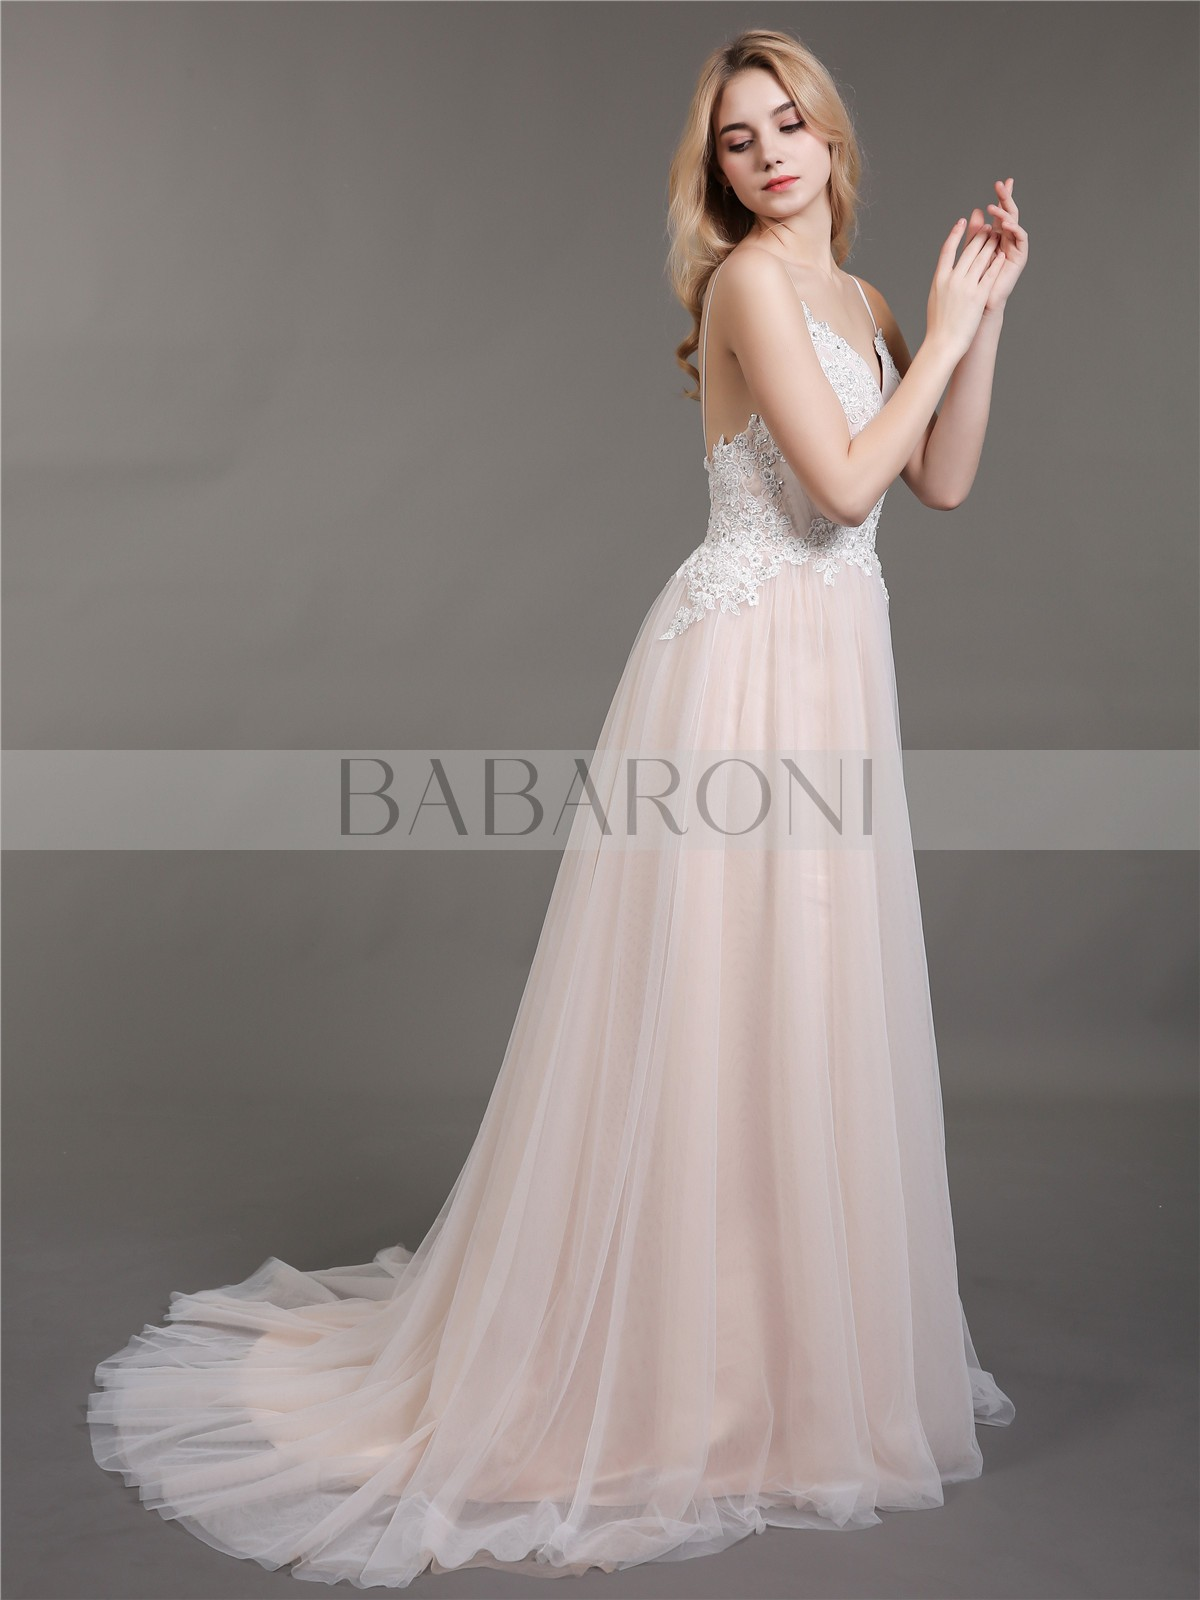 35e5a041ad8df Esther Spaghetti Strap V-neck Wedding Dress with Train | BABARONI